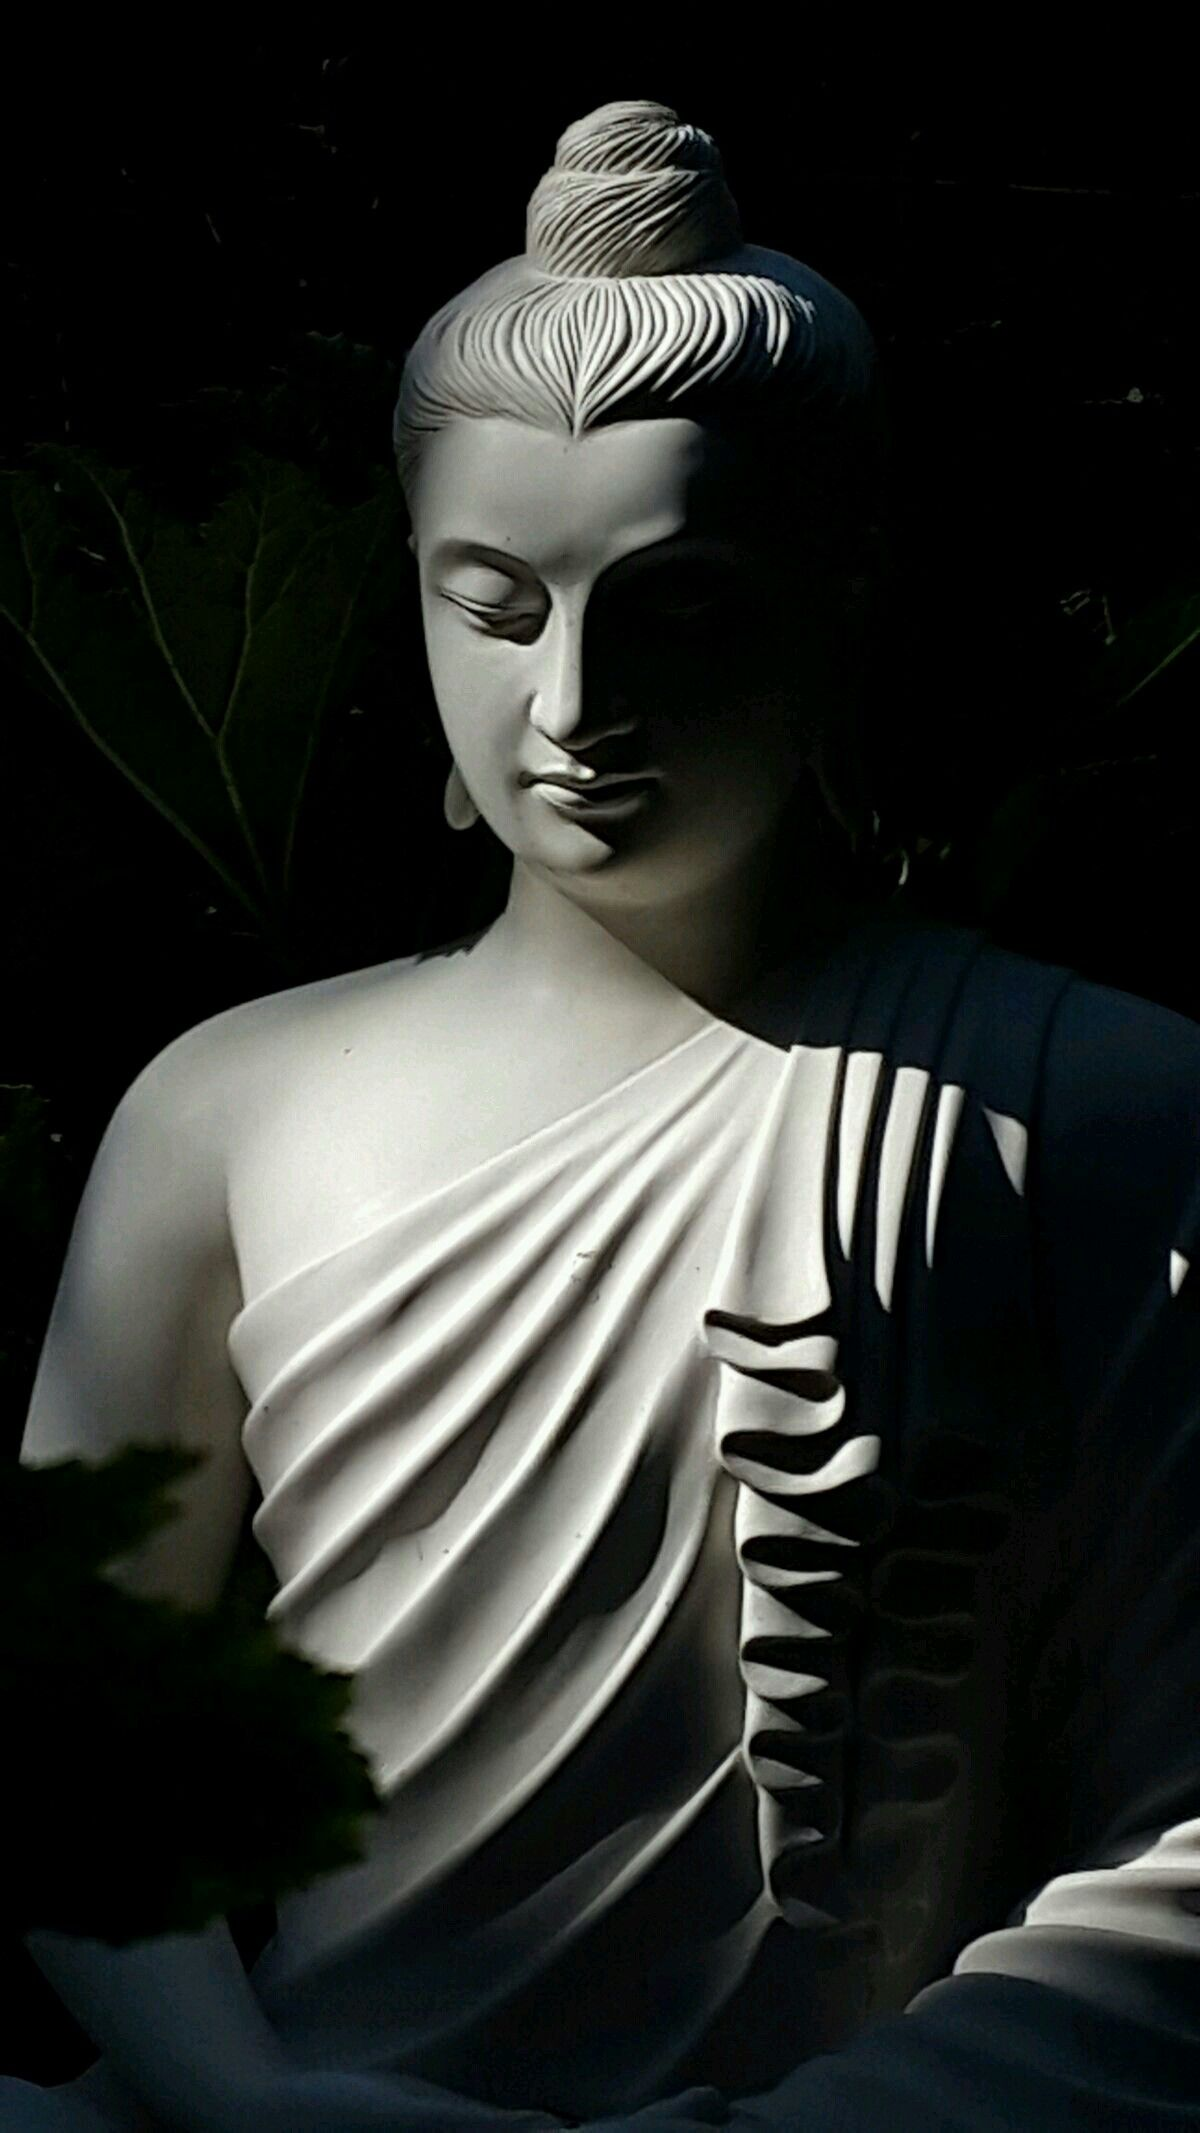 The Purpose Of Life Buddha Says Its Nothing The Essence Of His